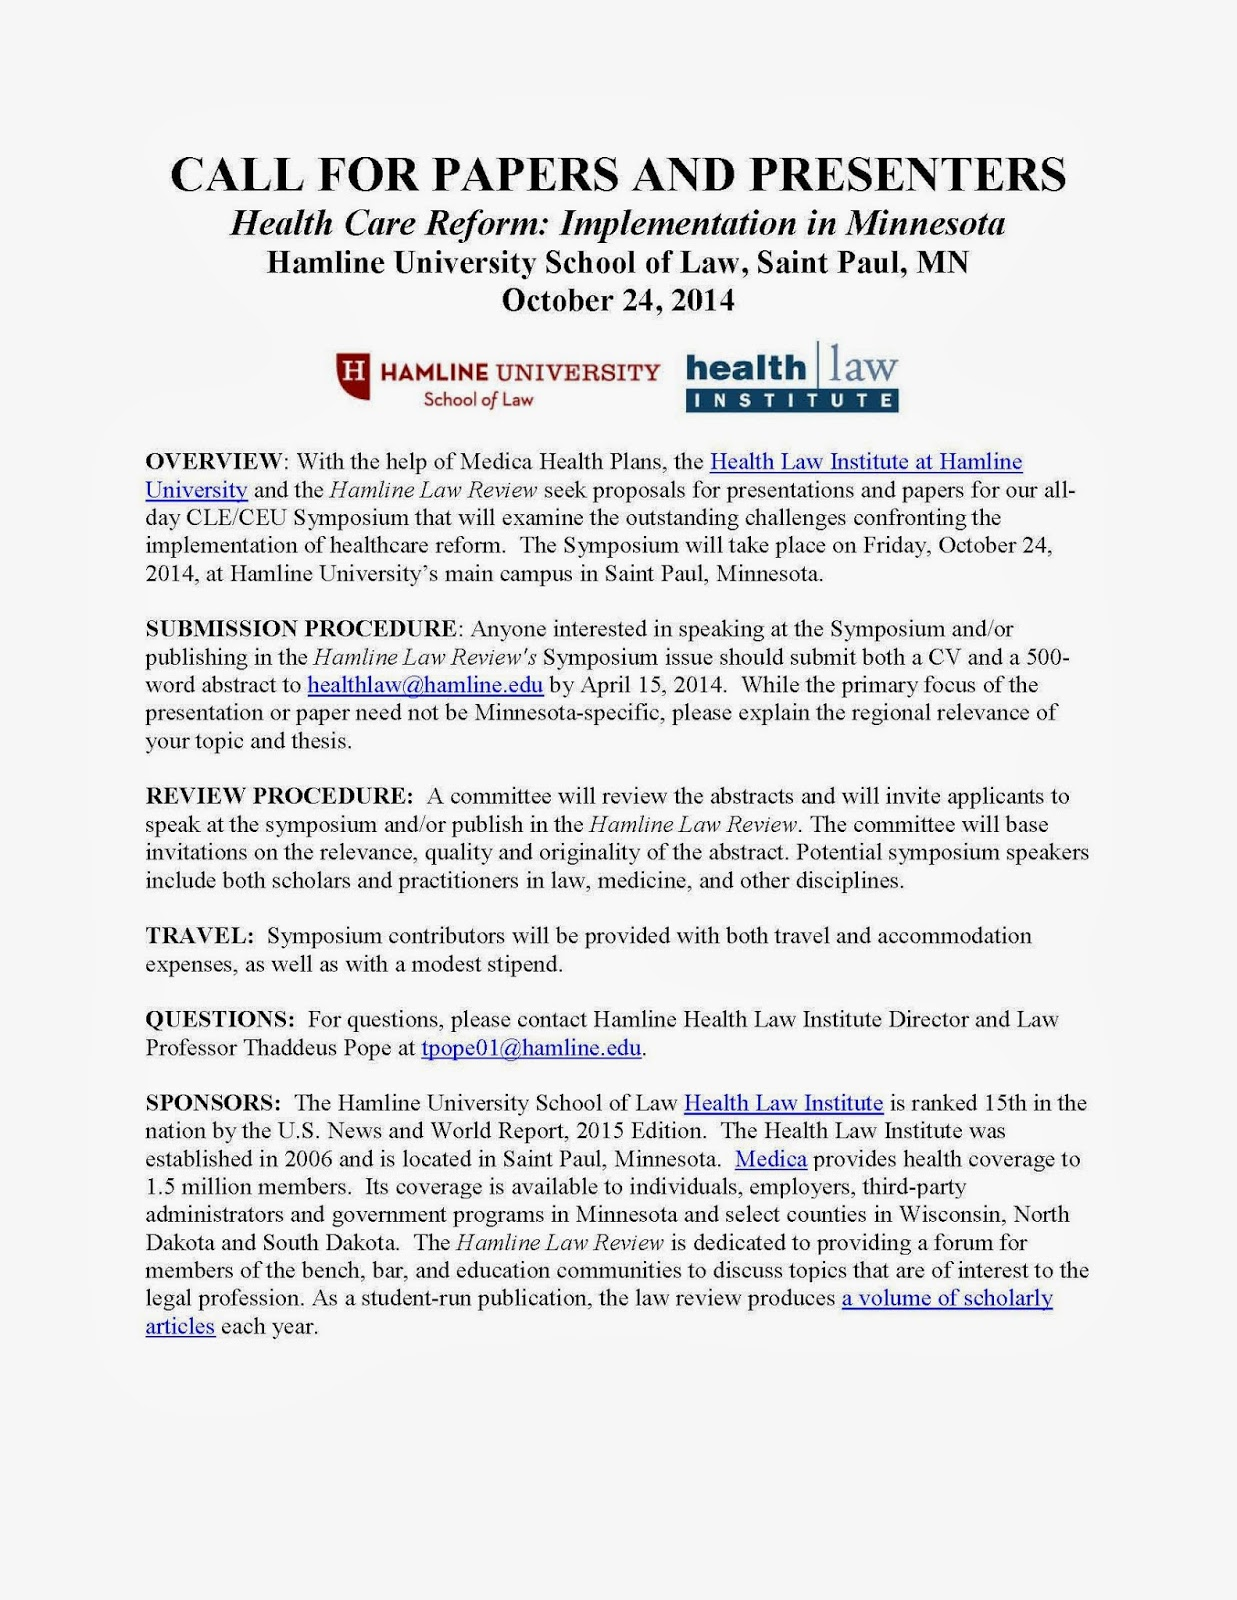 Call For Papers  Presenters Health Care Reform  Essay On Pollution In English Essay Writings In English Call For Papers  Presenters Health Care Reform  Example English Essay also English Essay Topics For College Students